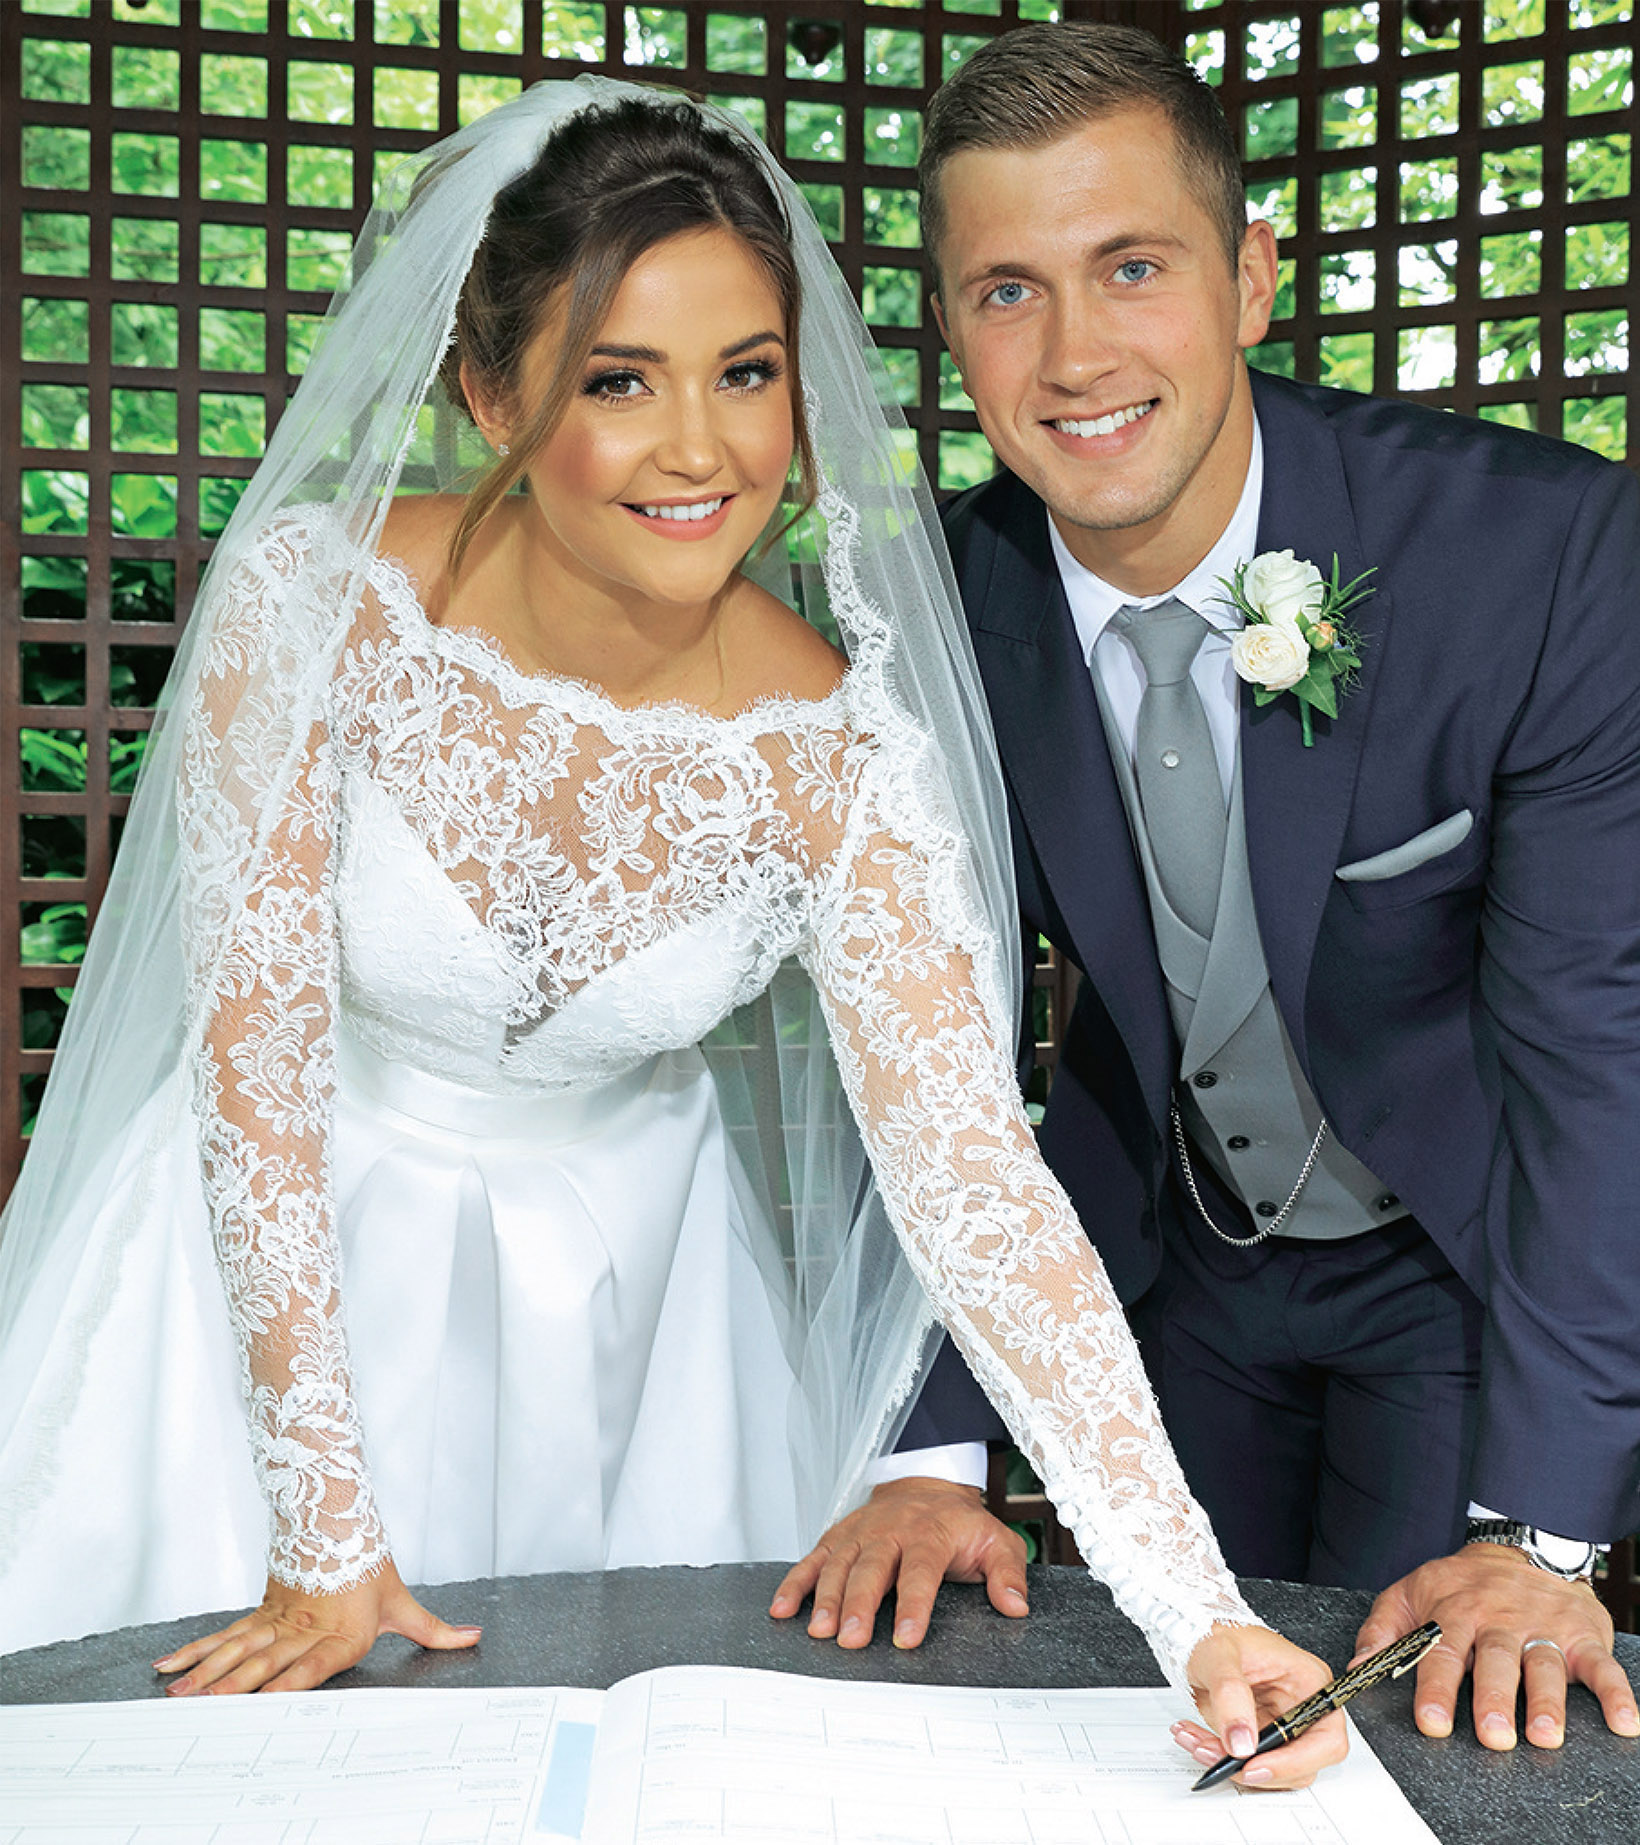 Dan osborne wedding